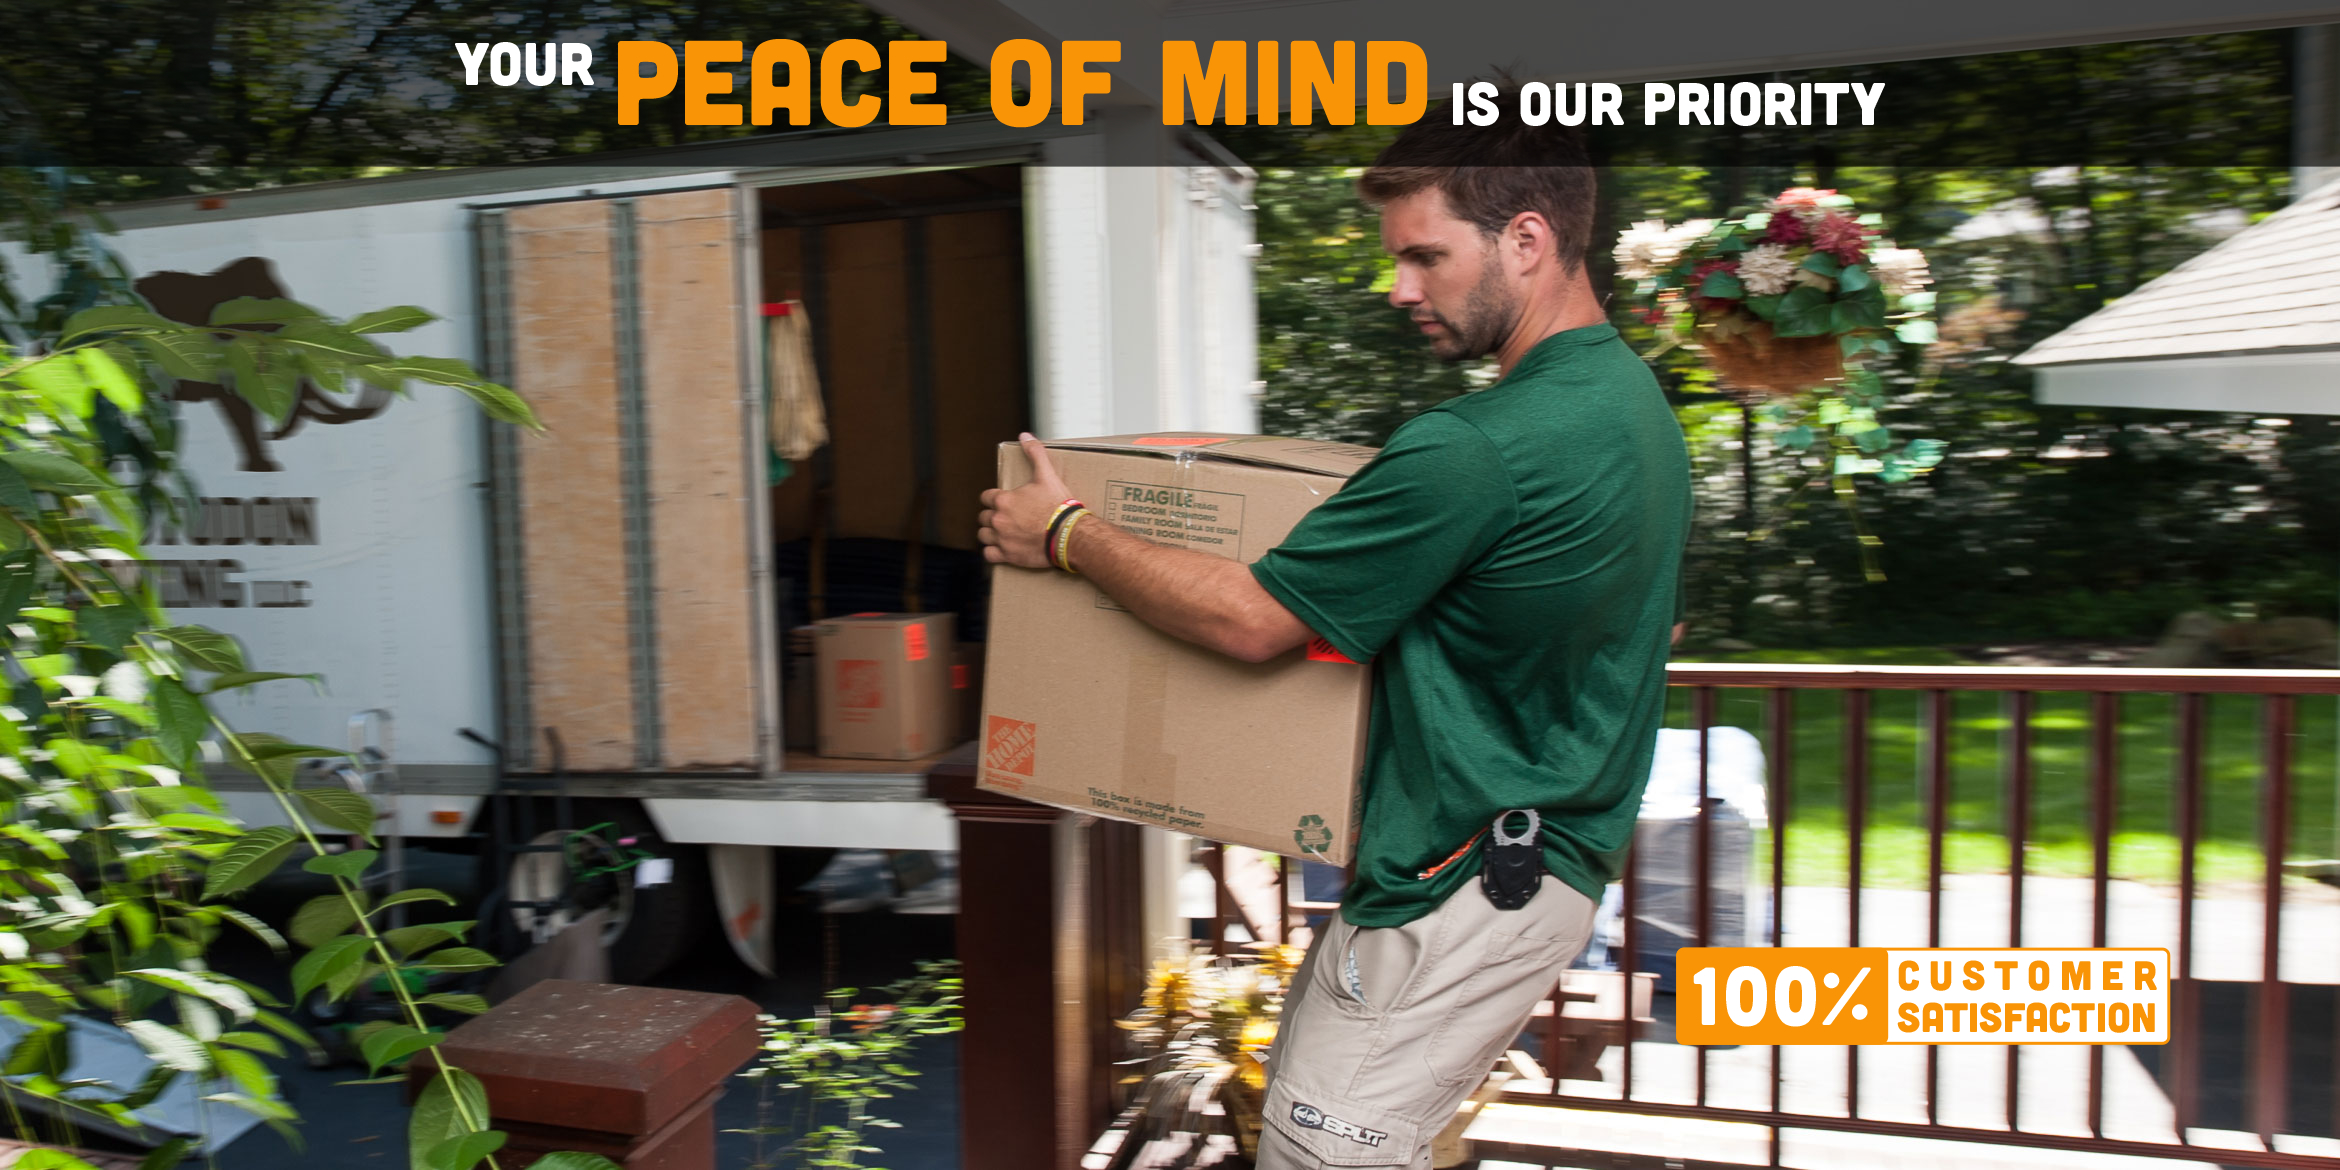 Your Peace of Mind is Our Priority